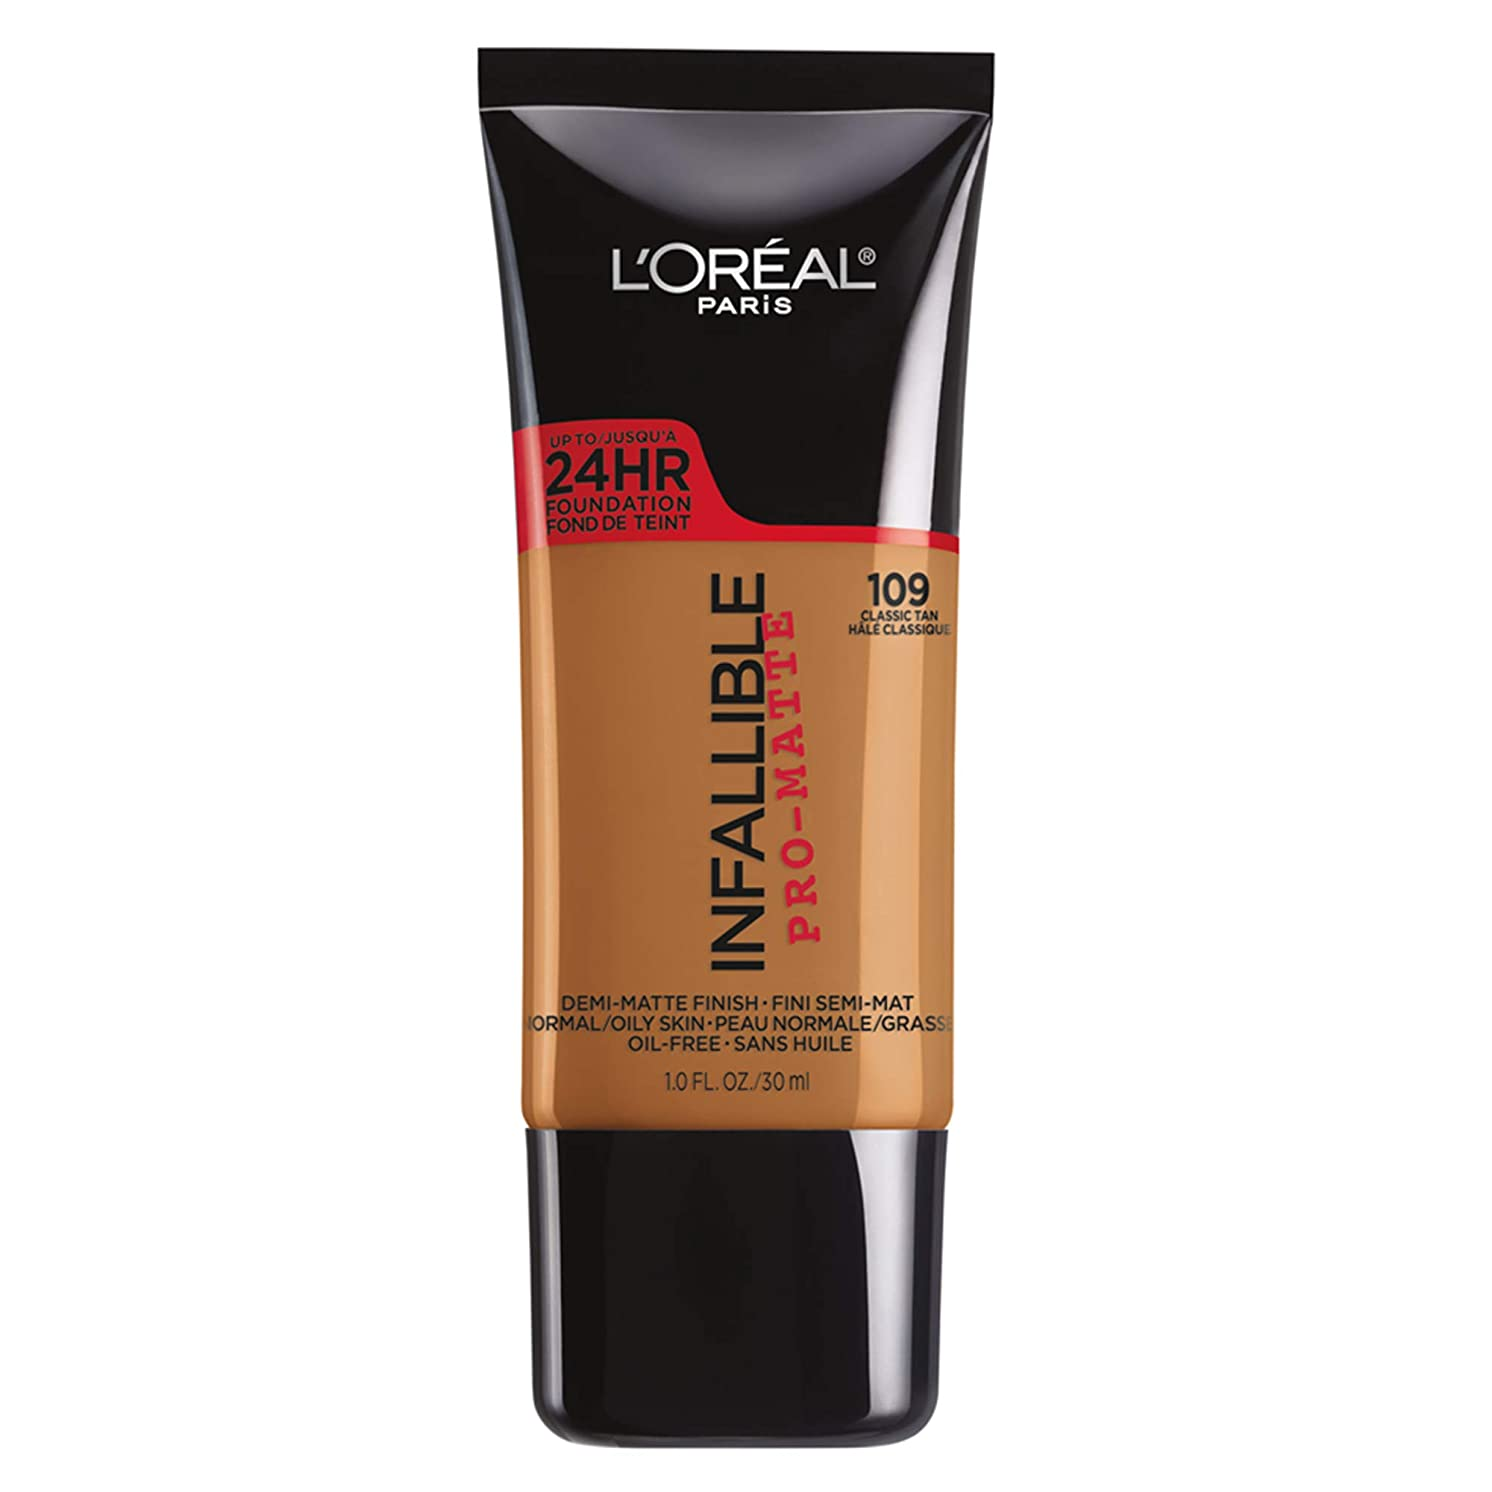 怪物低い爬虫類L'Oreal Paris Infallible Pro-Matte Foundation Makeup, 109 Classic Tan, 1 fl. oz[並行輸入品]